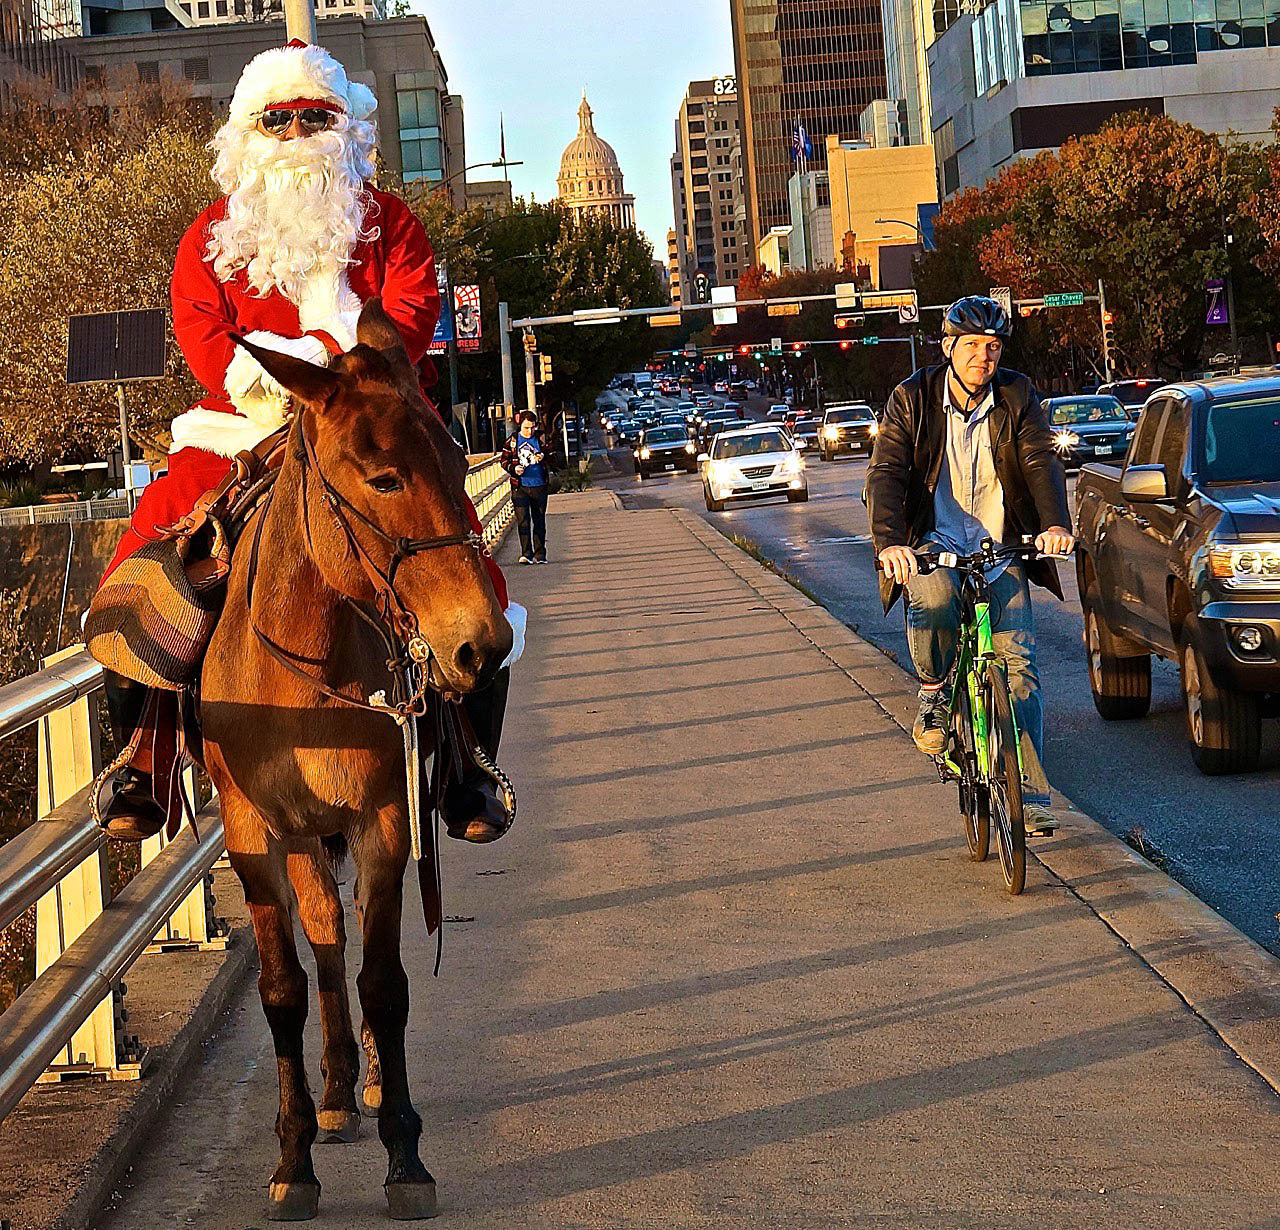 Santa on the bridge